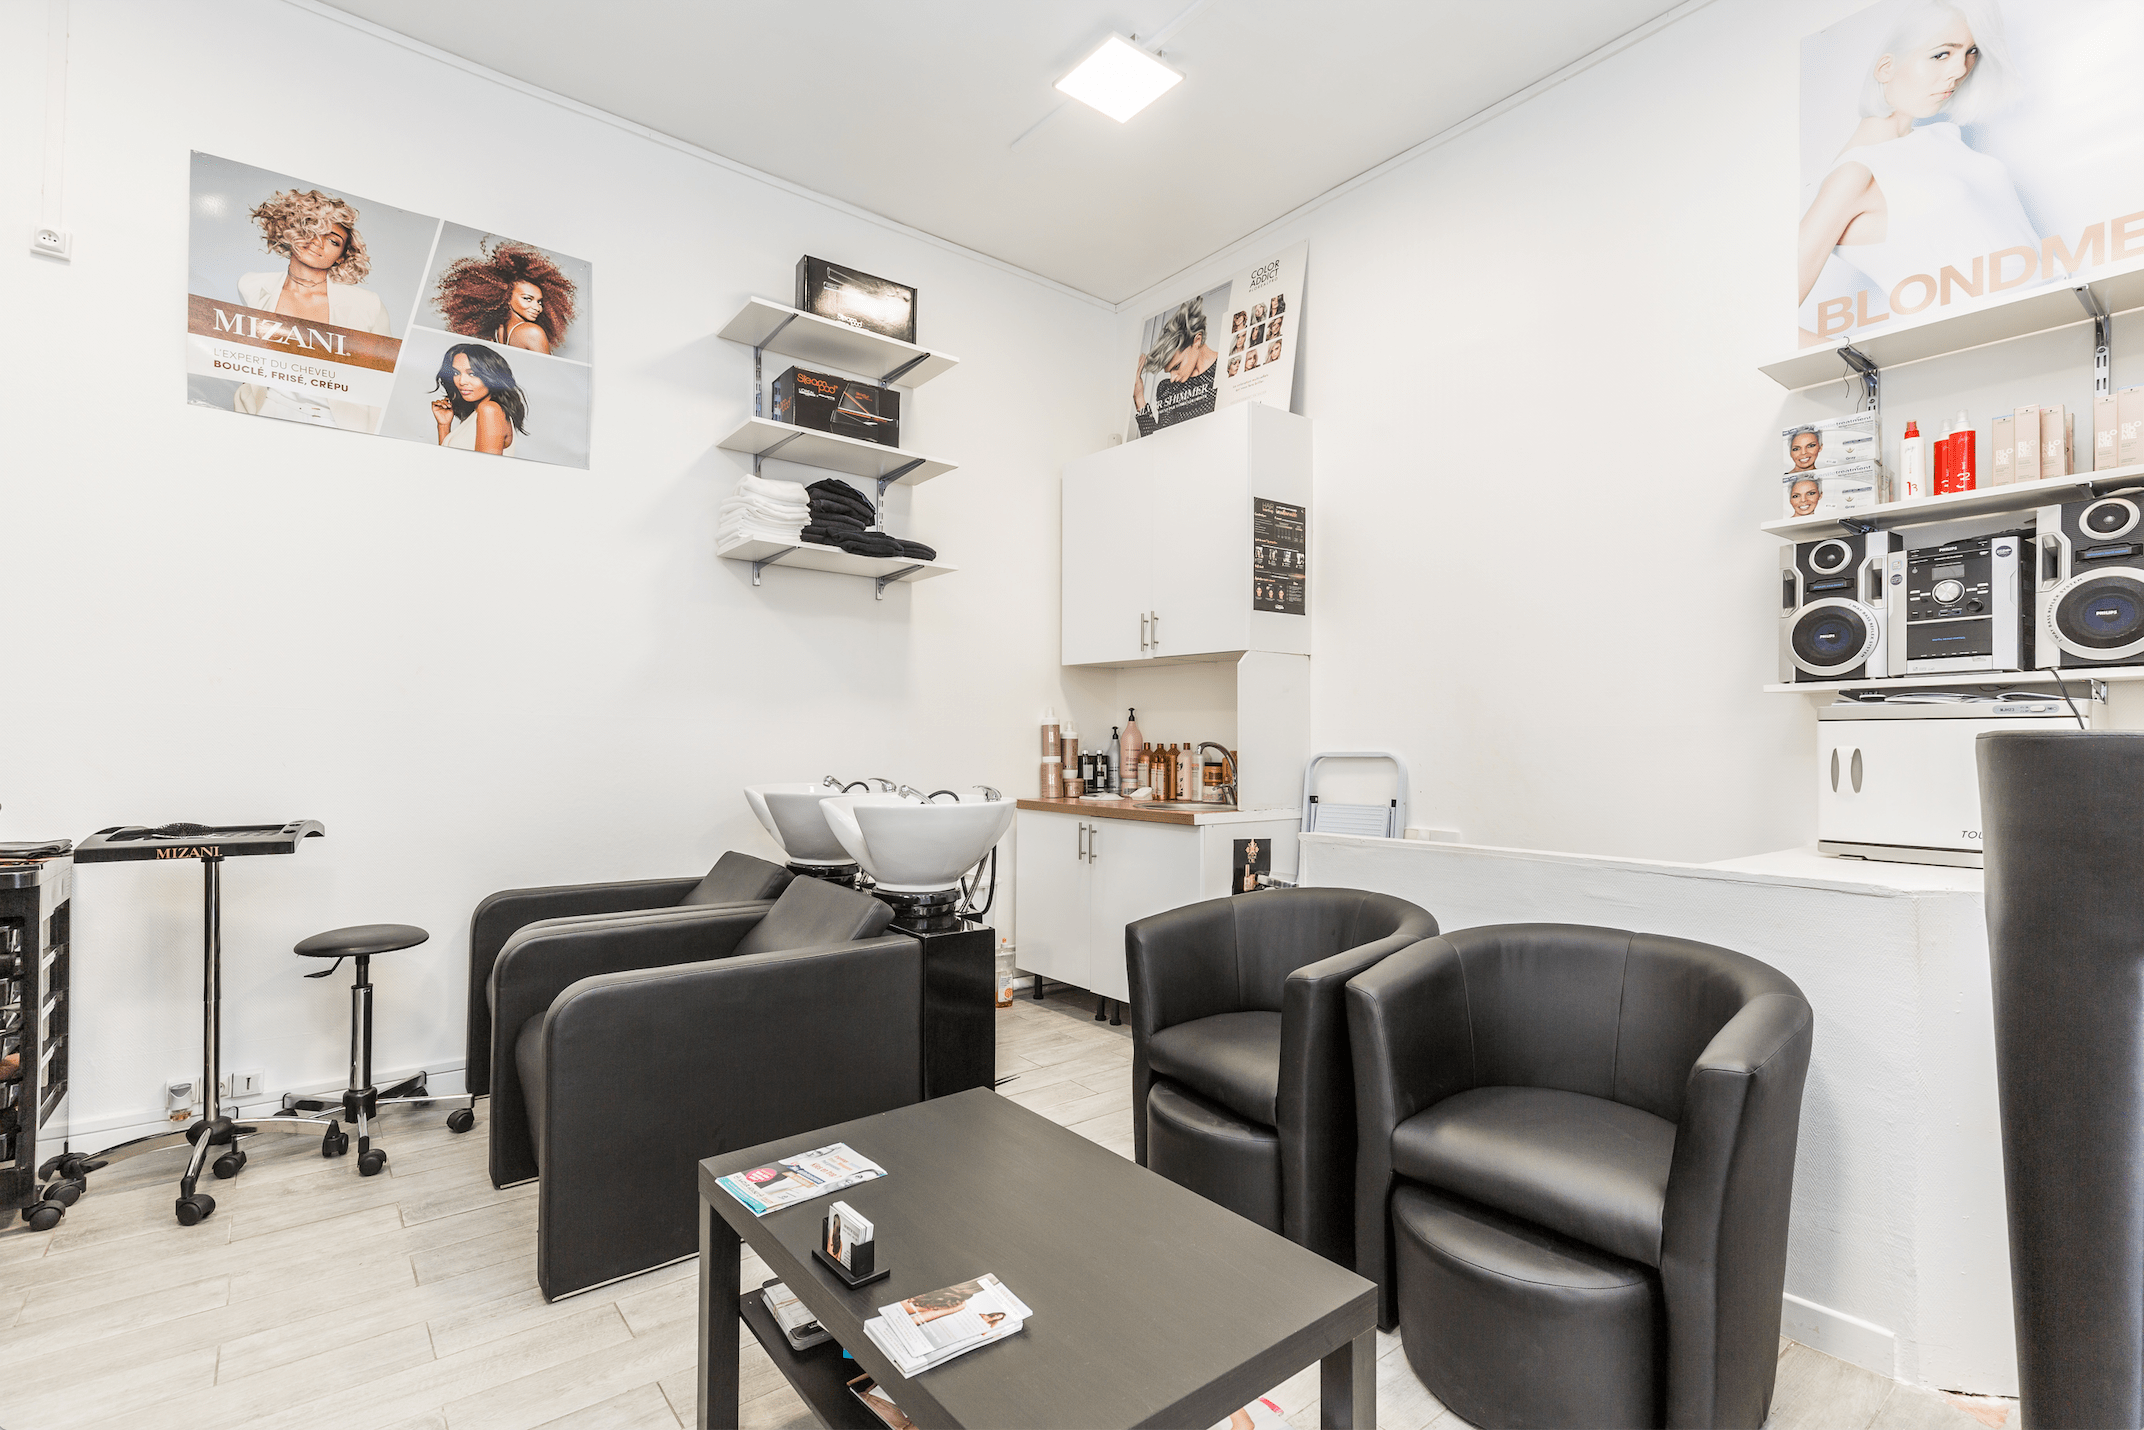 Salon De Coiffure Afro Antillais Paris Hortycélia I Coiffeur Visagiste Multiéthnique à Paris